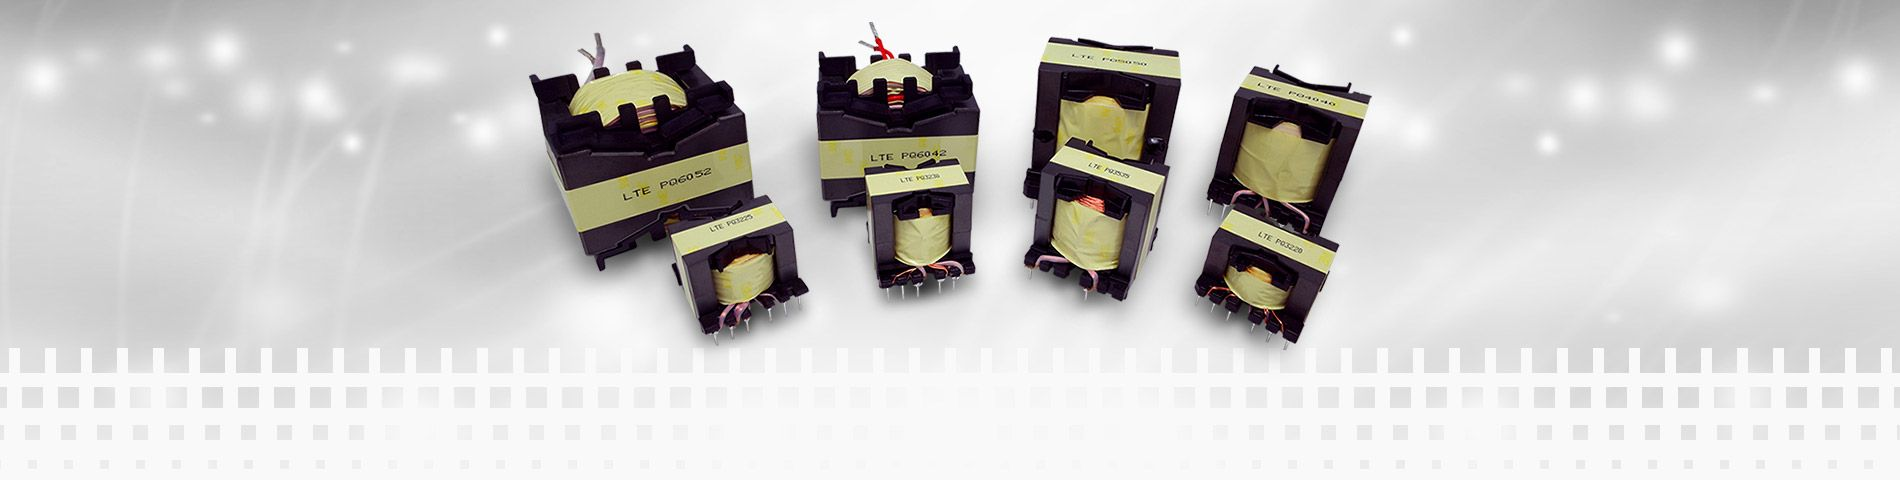 Transformer the heart of Switching Power Supply